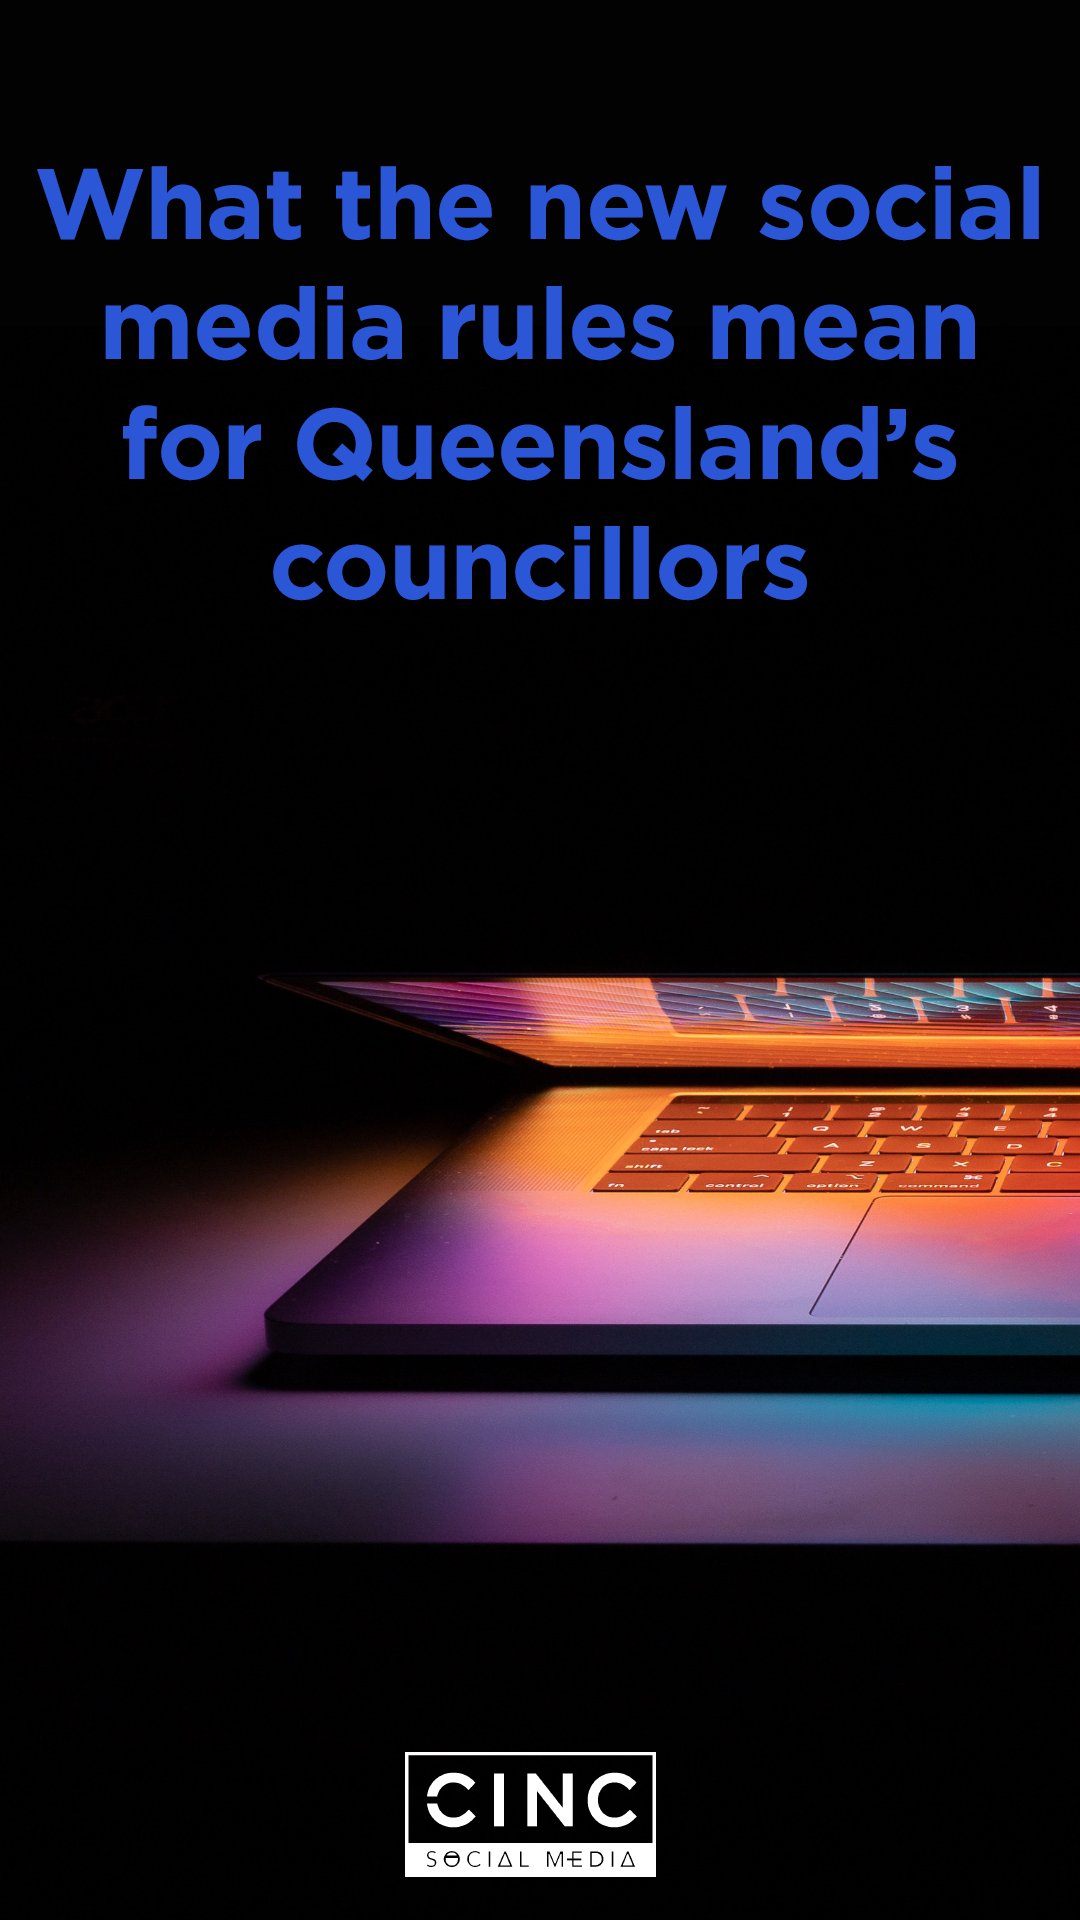 What-the-new-social-media-rules-mean-for-Queenslands-councillors-V.png